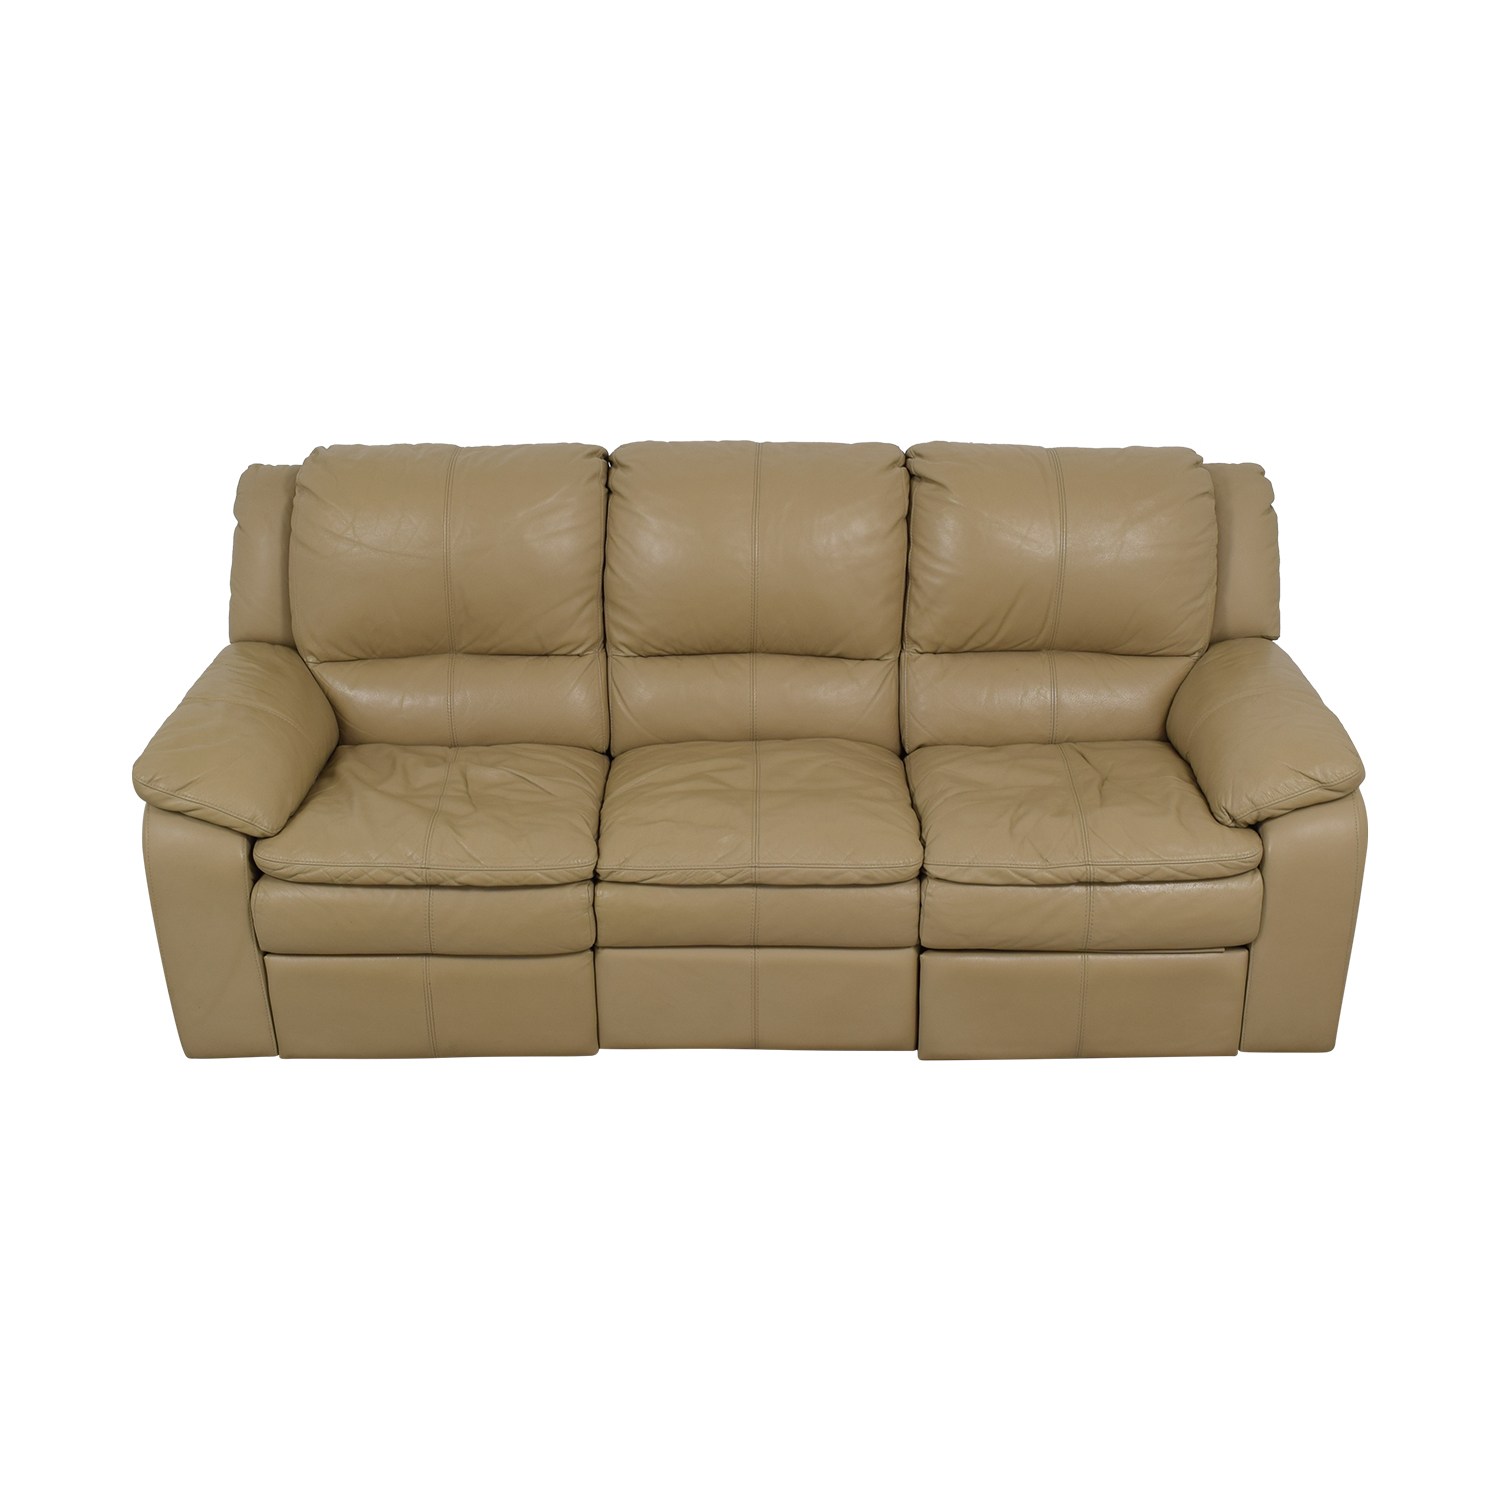 Amazing 77 Off Jennifer Furniture Jennifer Furniture Beige Leather Three Seater Reclining Sofa Sofas Gmtry Best Dining Table And Chair Ideas Images Gmtryco